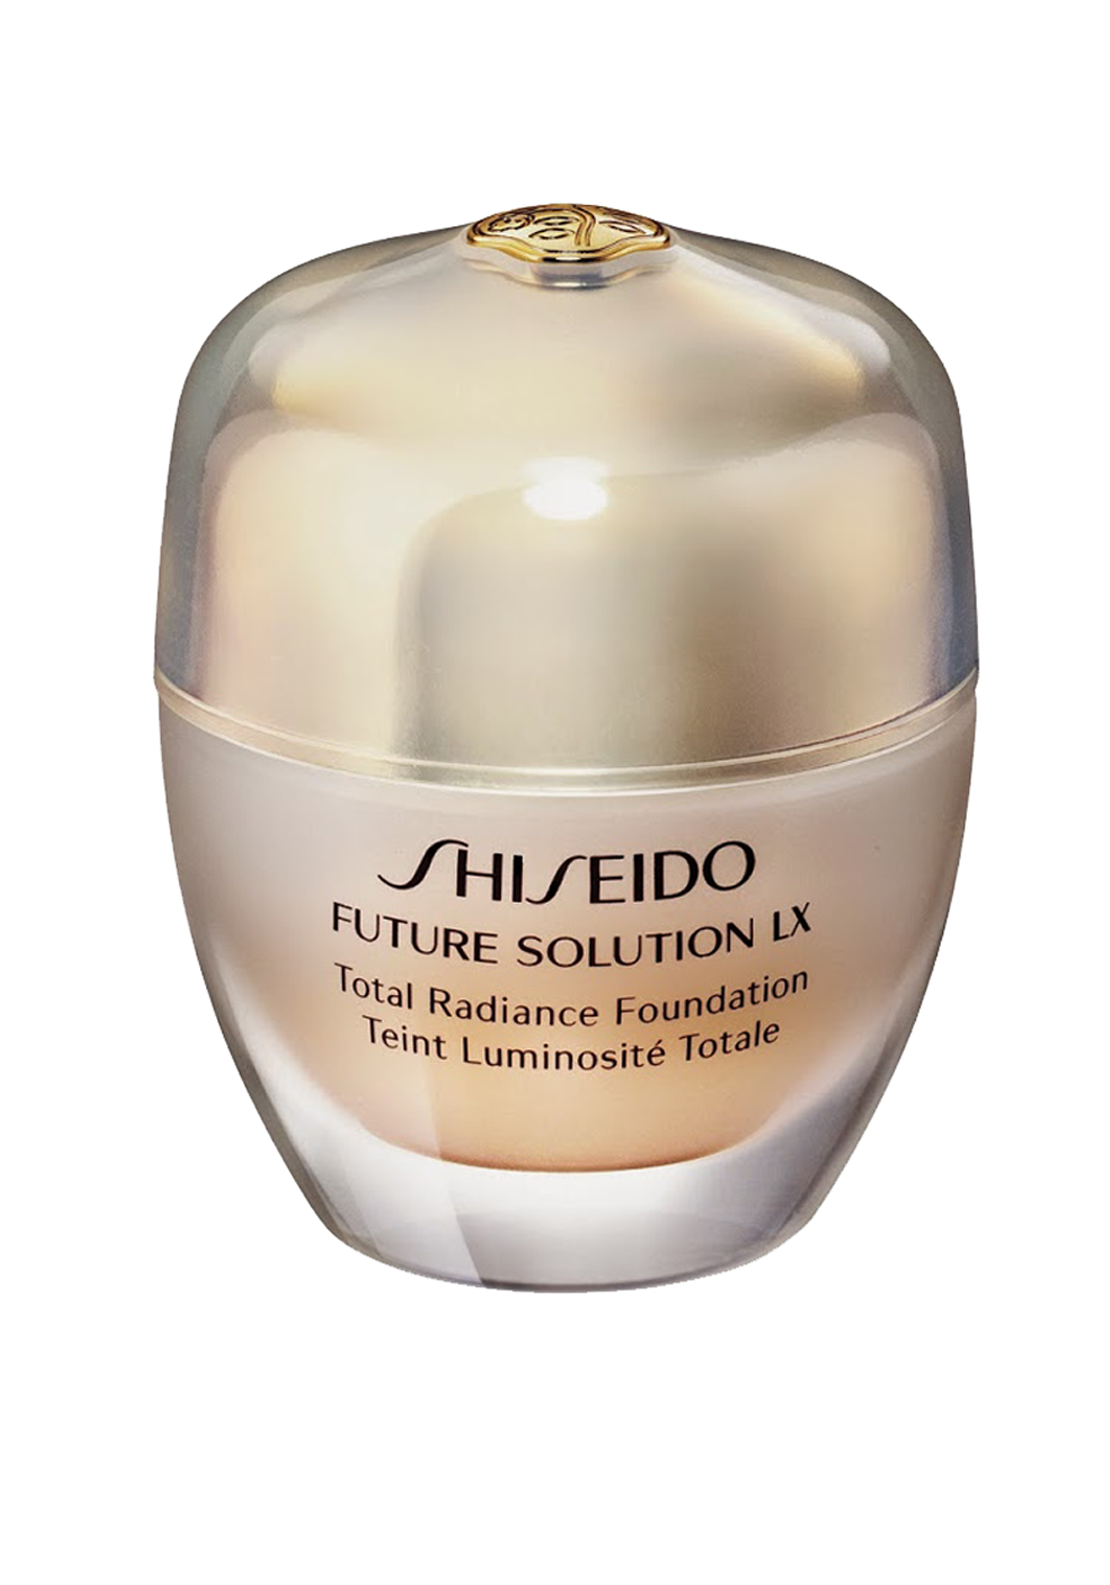 Shiseido Future Solution LX Total Radiance Foundation SPF15, Natural Deep Ivory 160